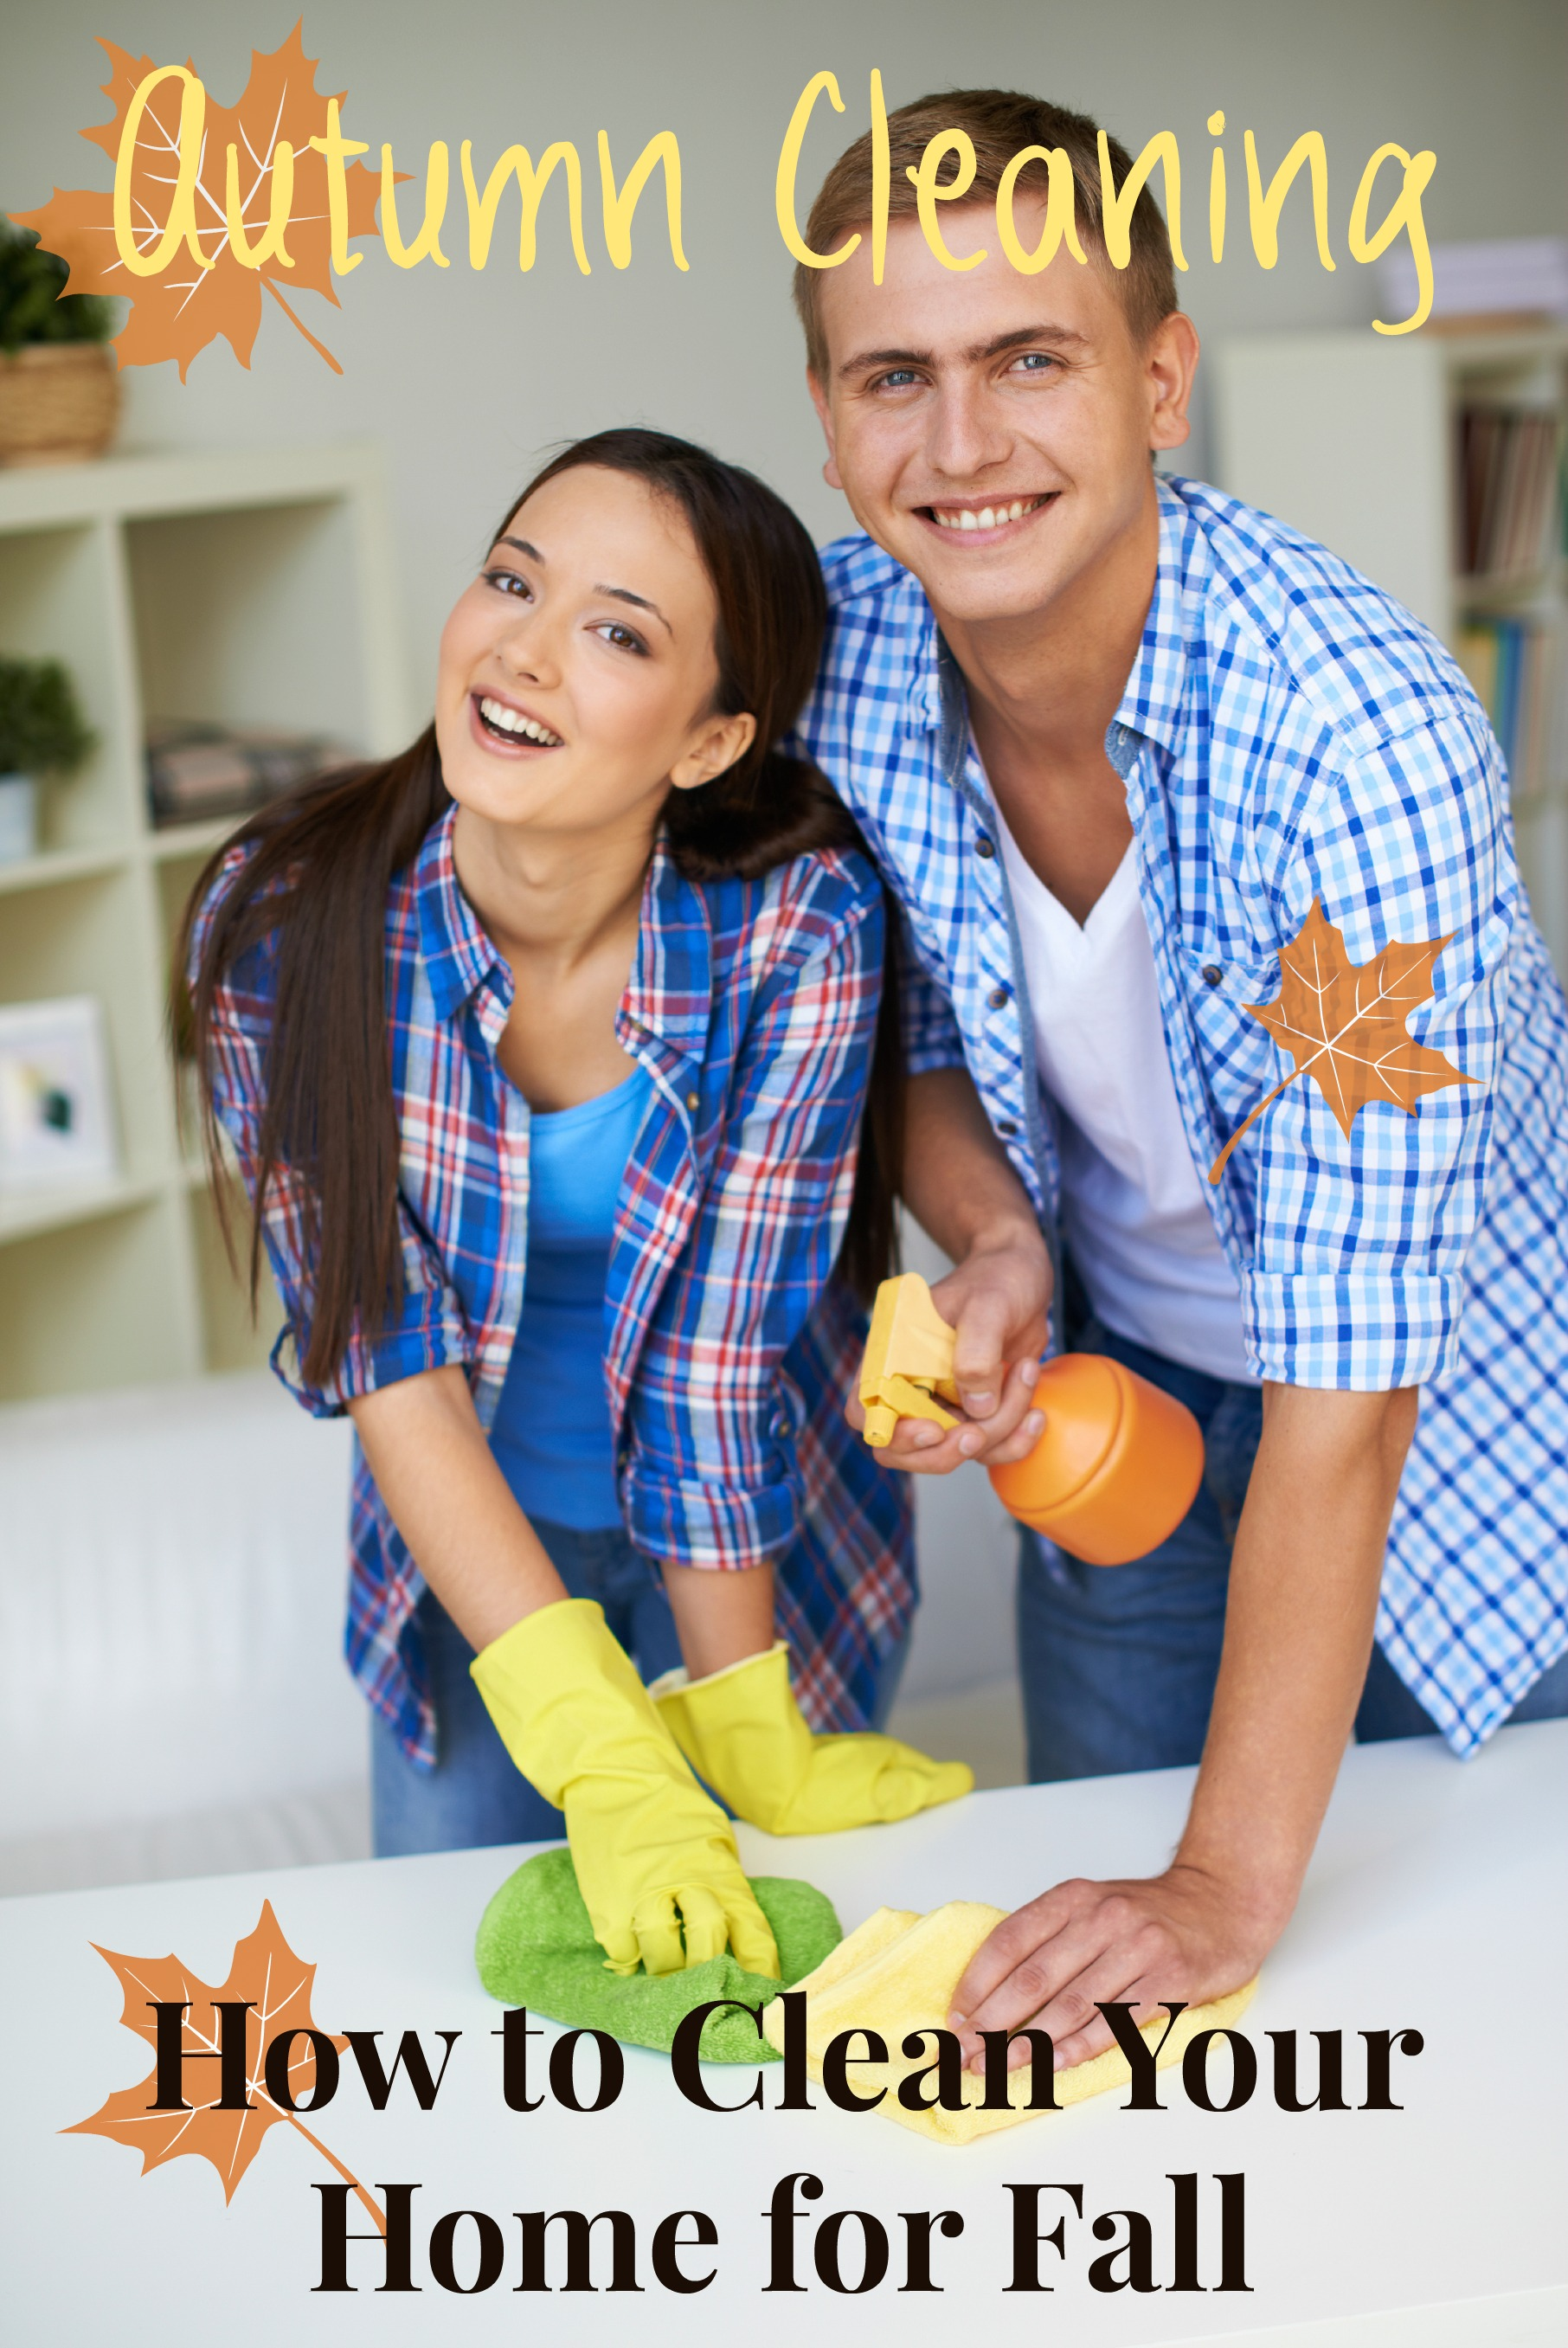 Autumn Cleaning - How To Clean Your Home